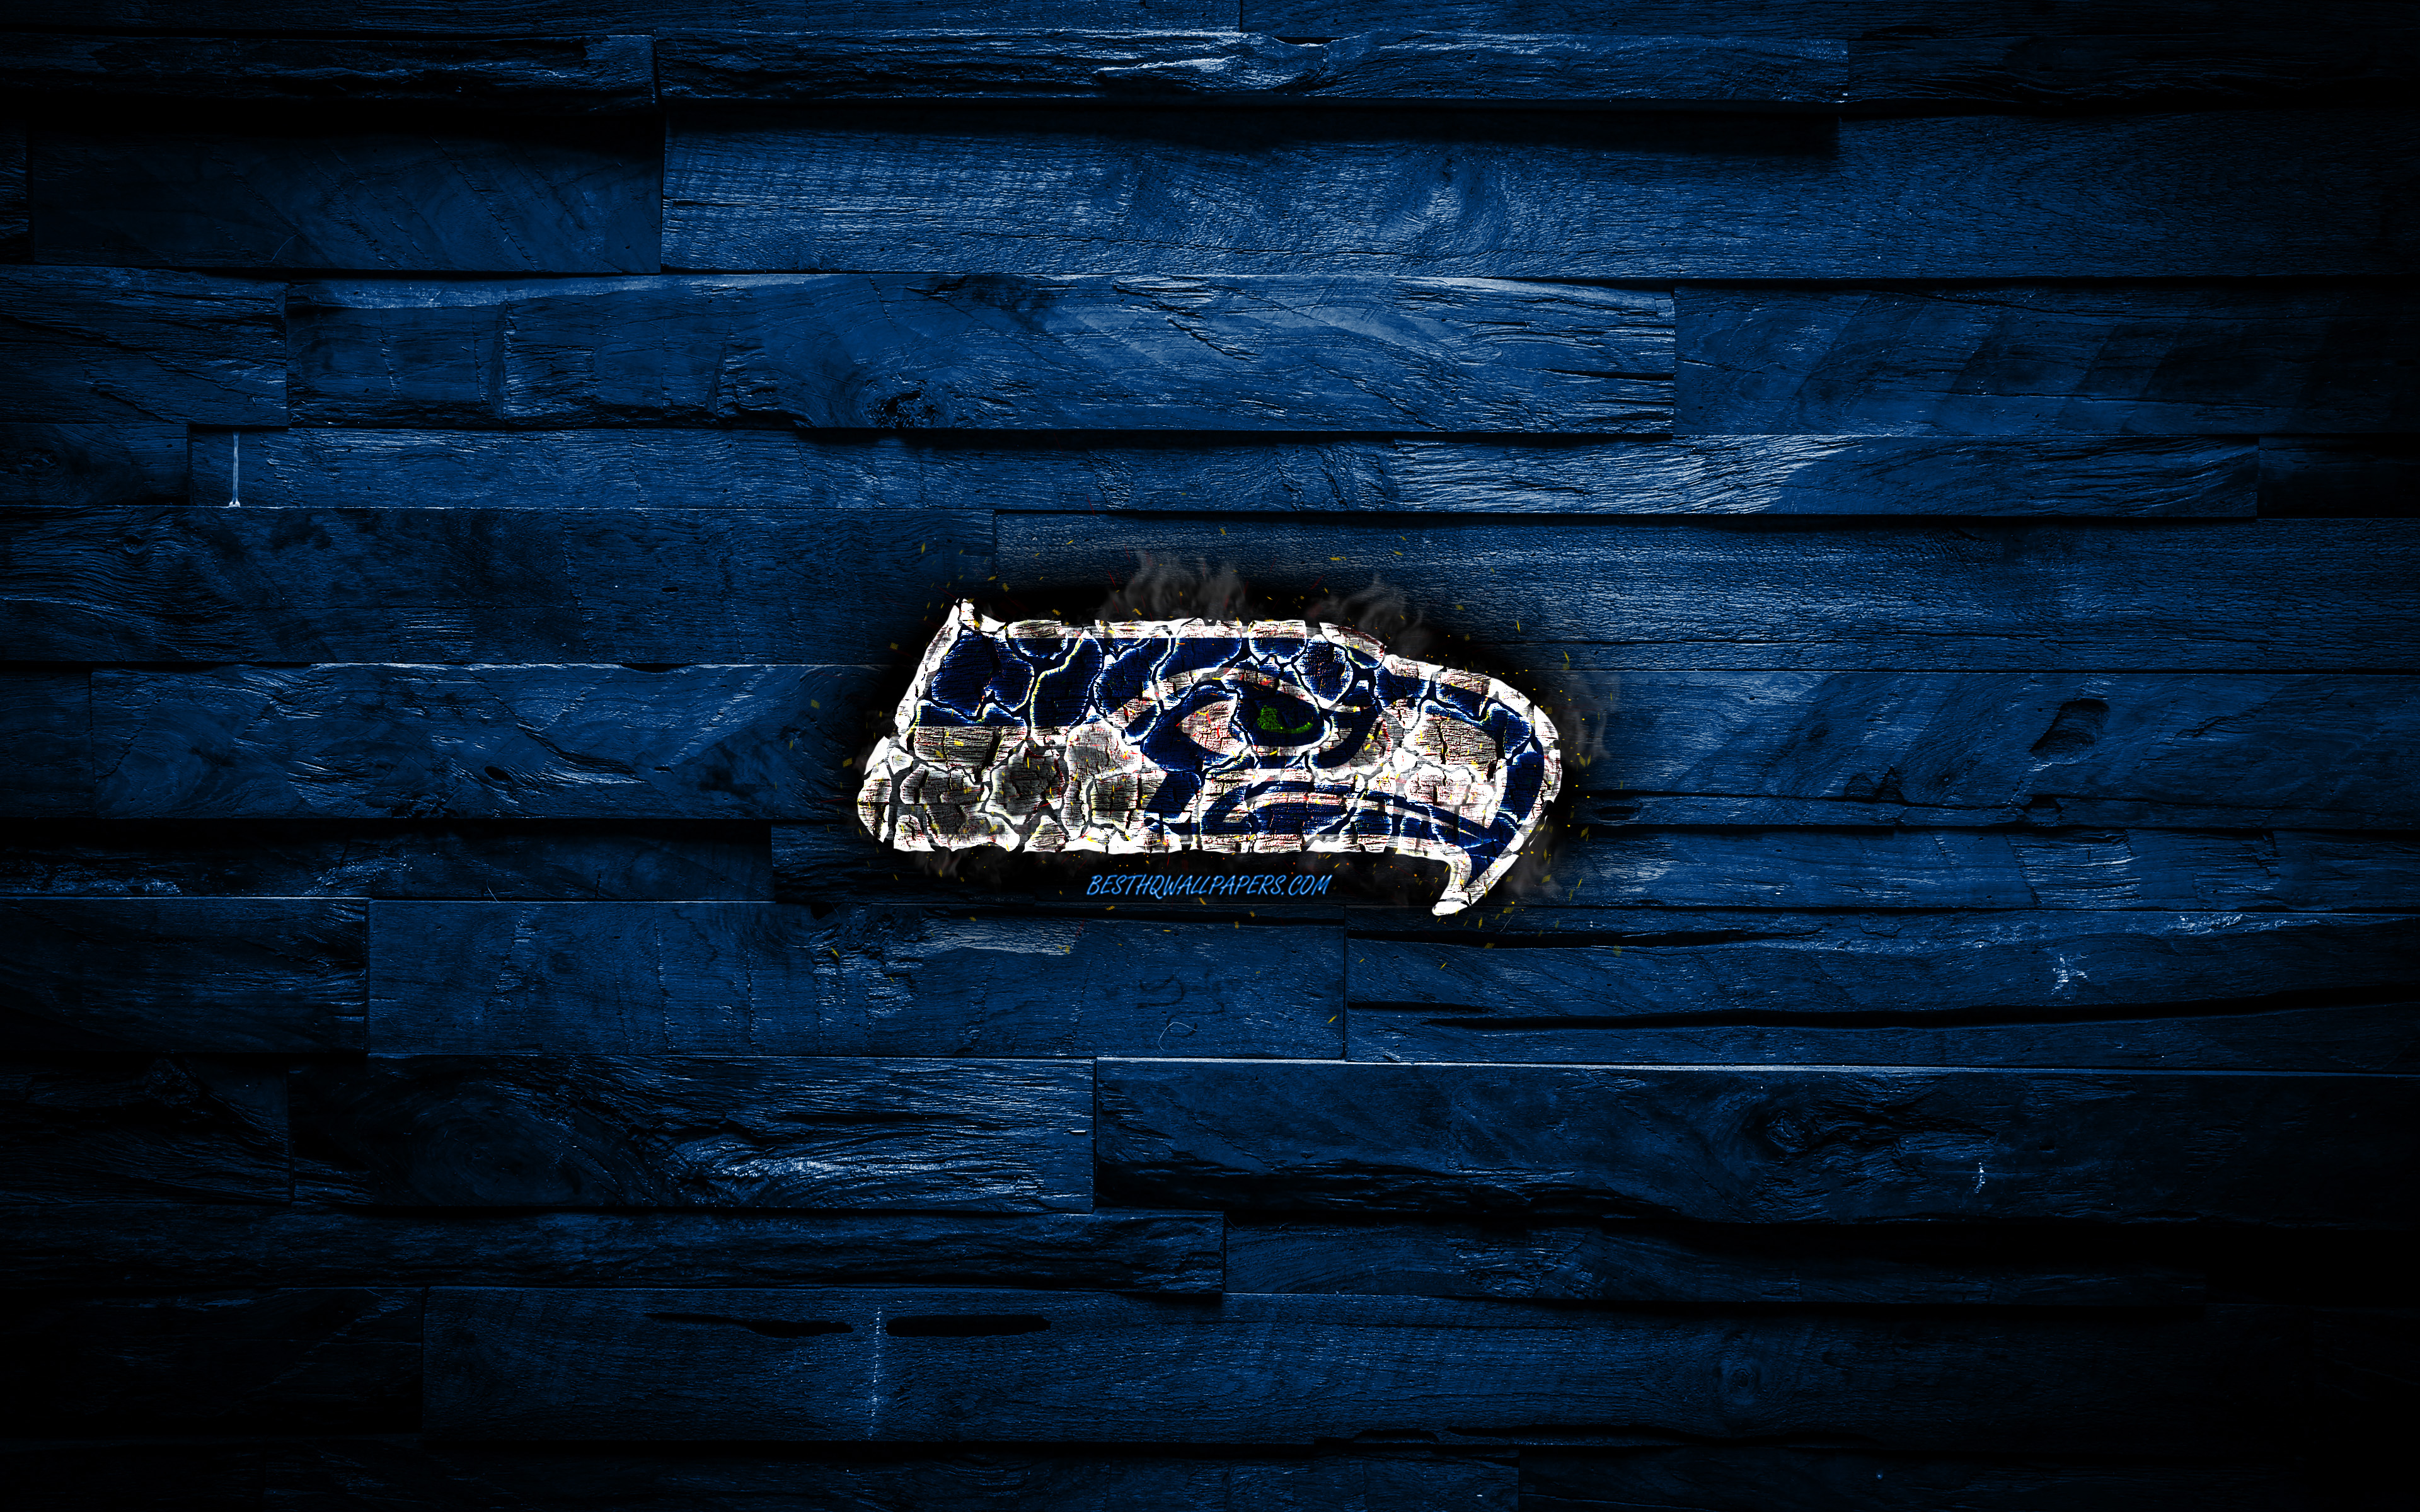 Download Wallpapers Seattle Seahawks 4k Scorched Logo Nfl Blue Wooden Background American Baseball Team National Football Conference Grunge Baseball Seattle Seahawks Logo Fire Texture Usa Nfc For Desktop With Resolution 3840x2400 High